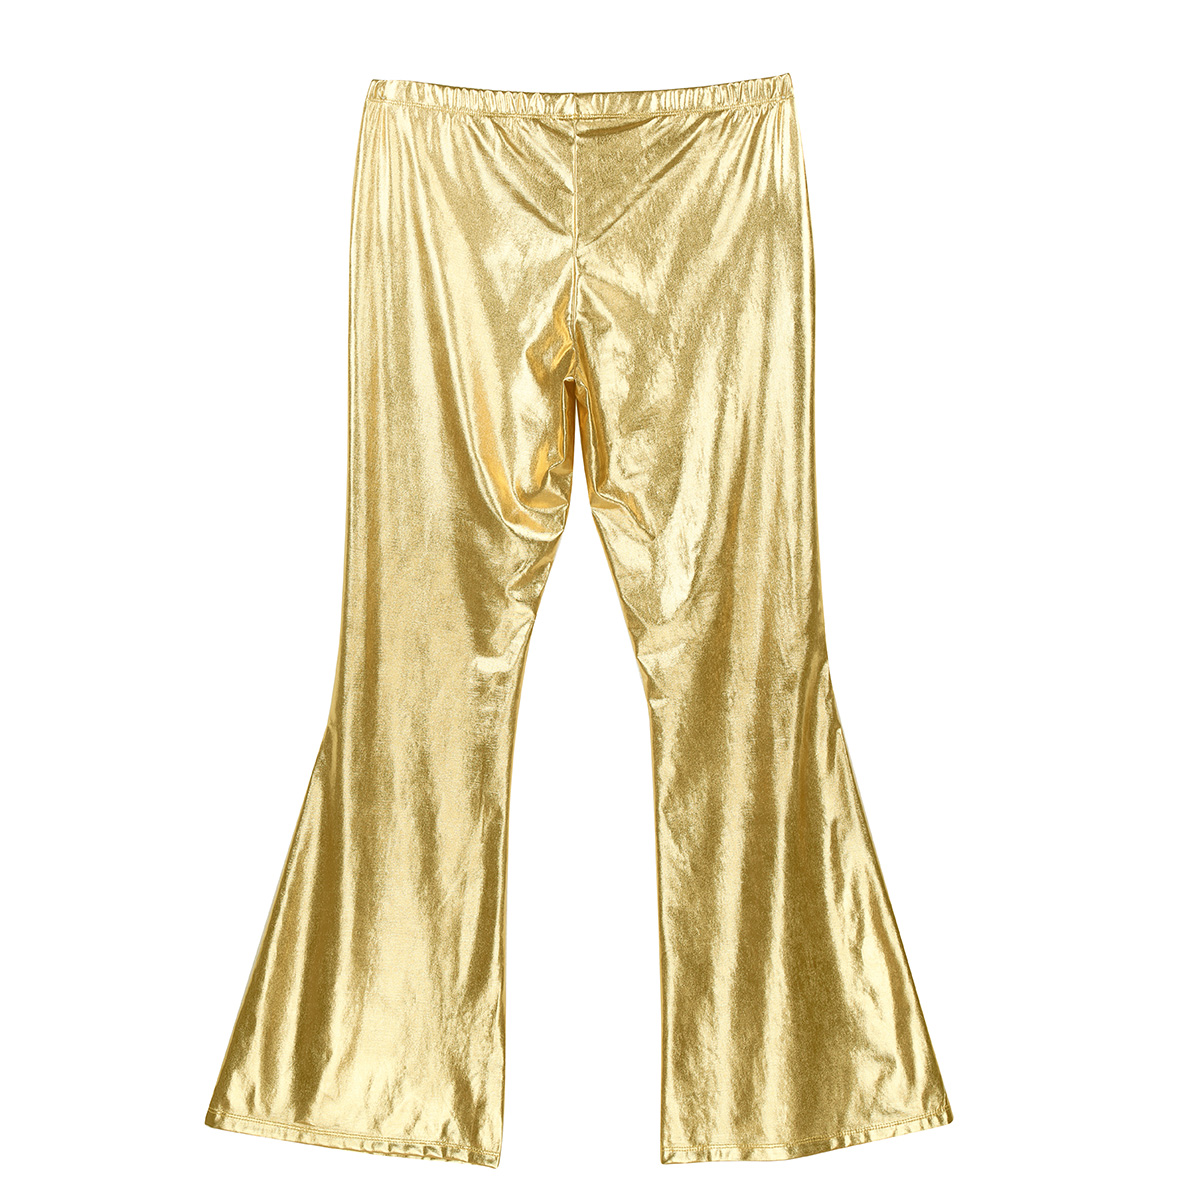 ChicTry Adults Mens Shiny Metallic Disco Pants with Bell Bottom Flared Long Pants Dude Costume Trousers for 70's Theme Parties 25